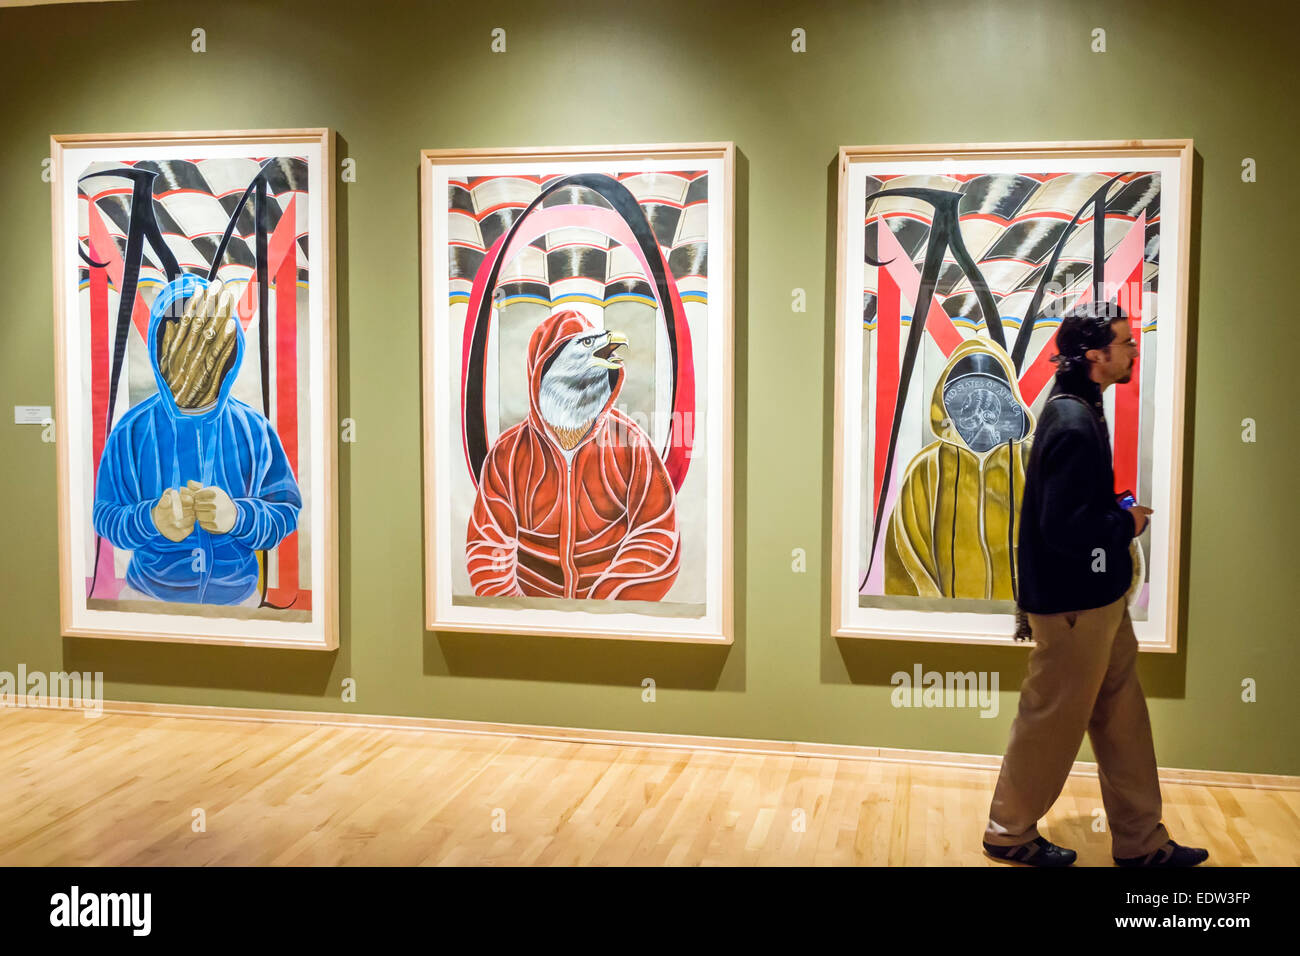 Chicago Illinois Lower West Side Pilsen National Museum of Mexican Art Hispanic Chicano gallery man looking - Stock Image